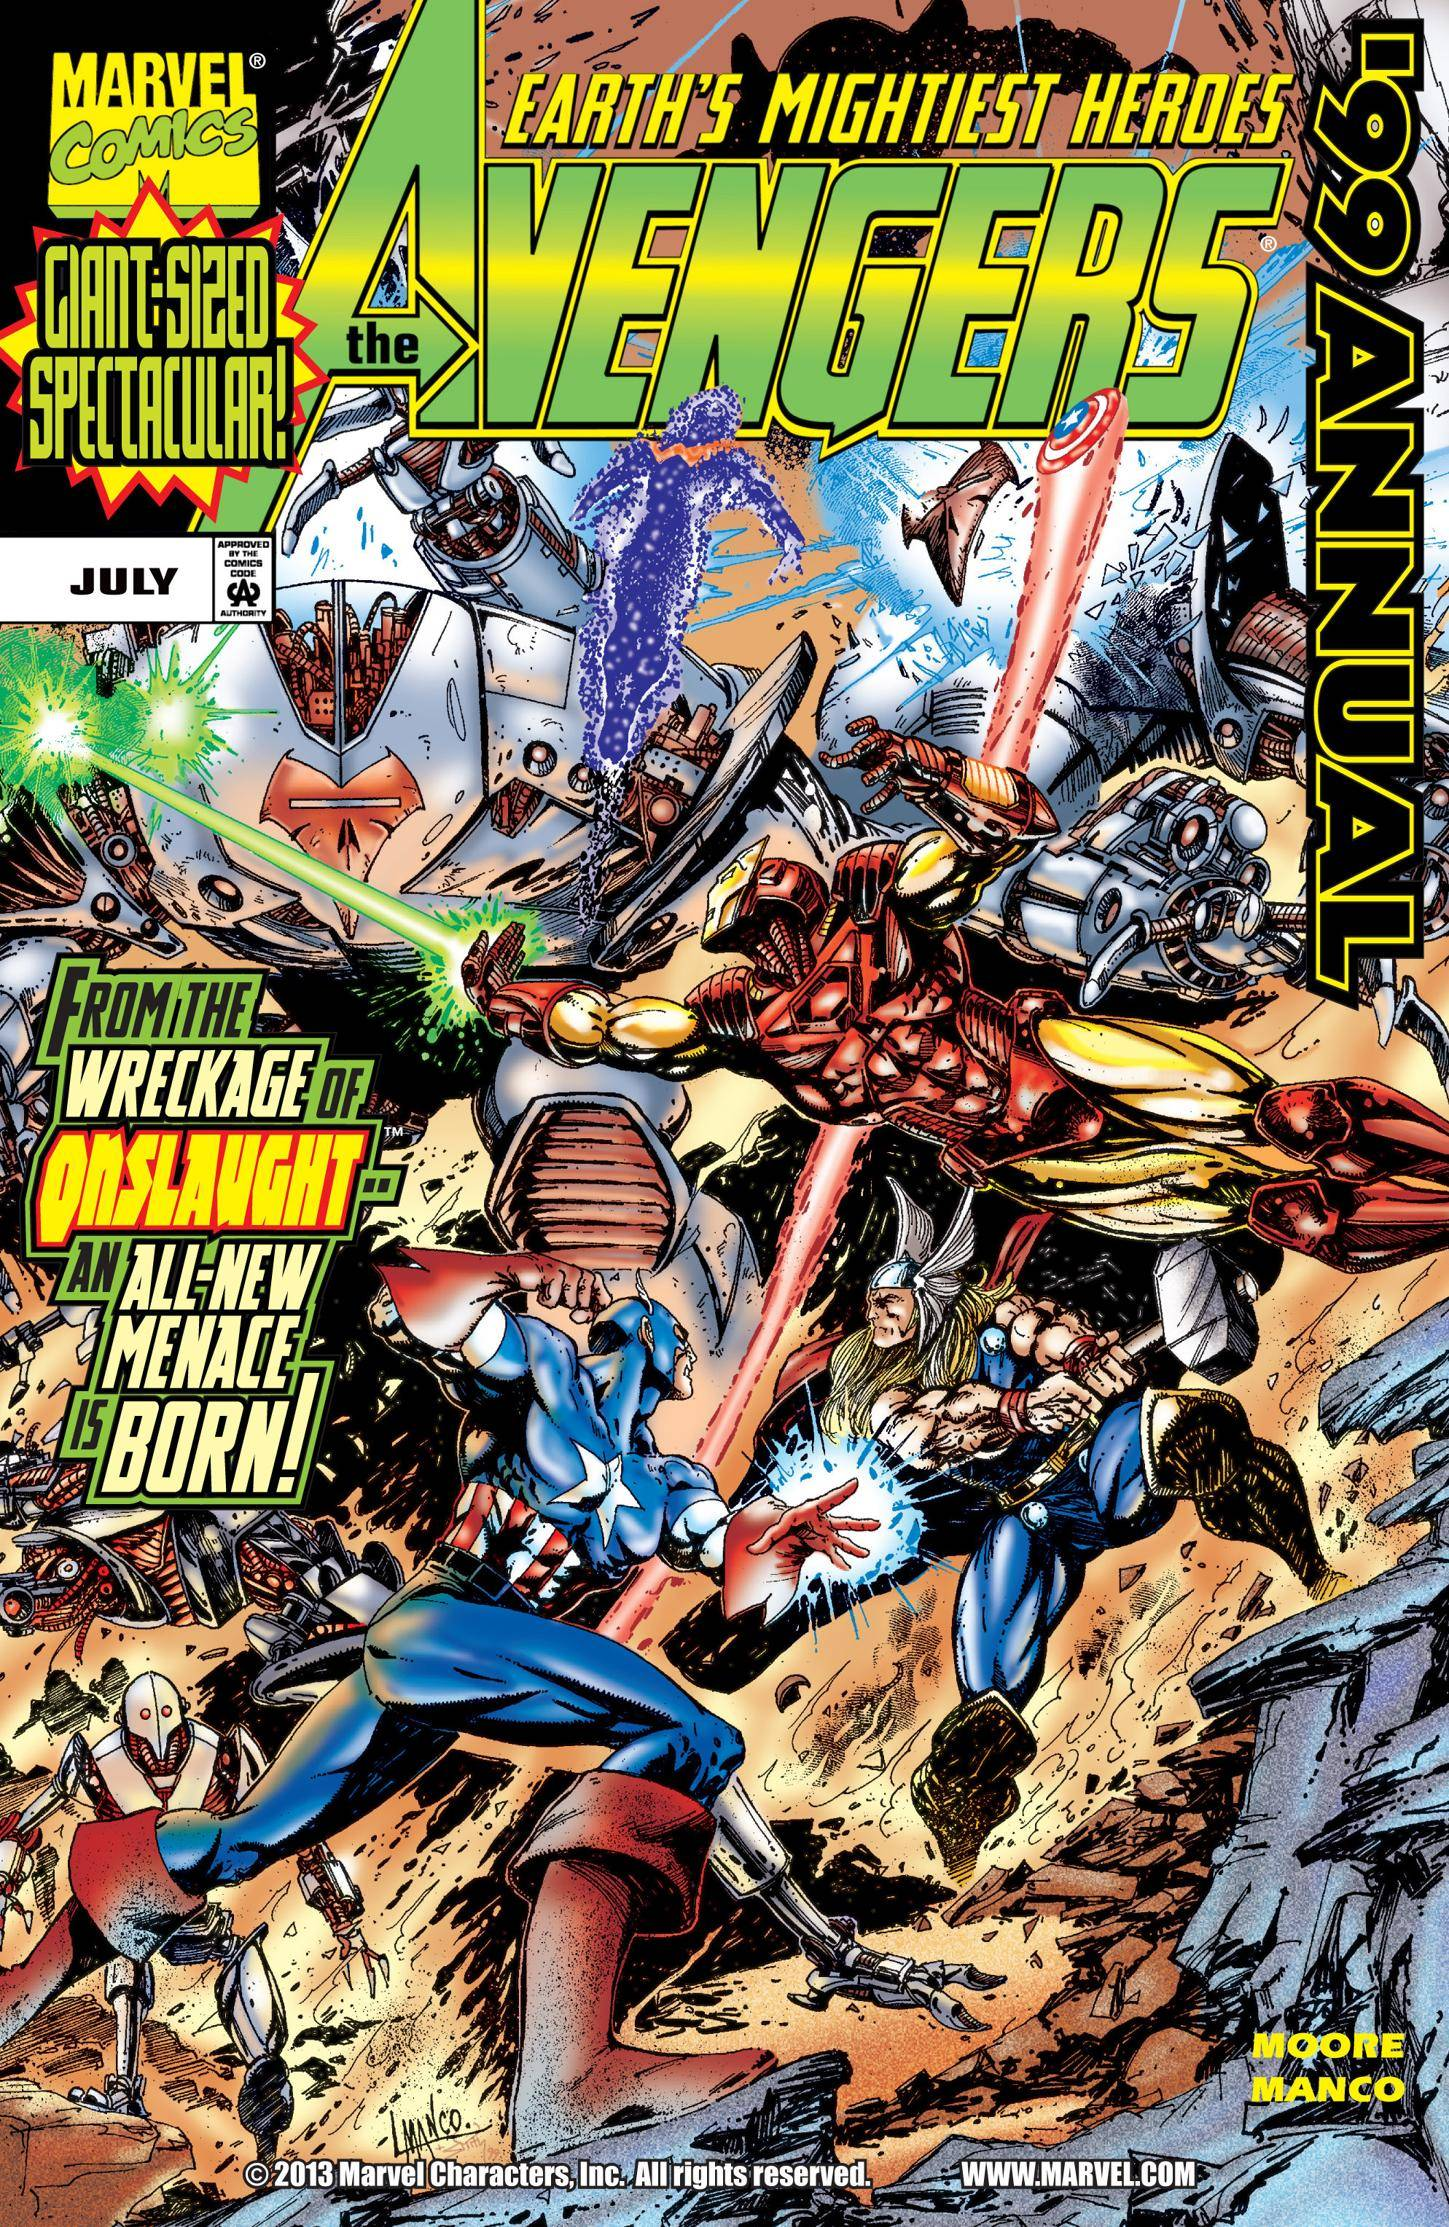 New Releases 2015 3 14 Avengers Annual 99 1999 digital-hd Kleio-Empire cbz